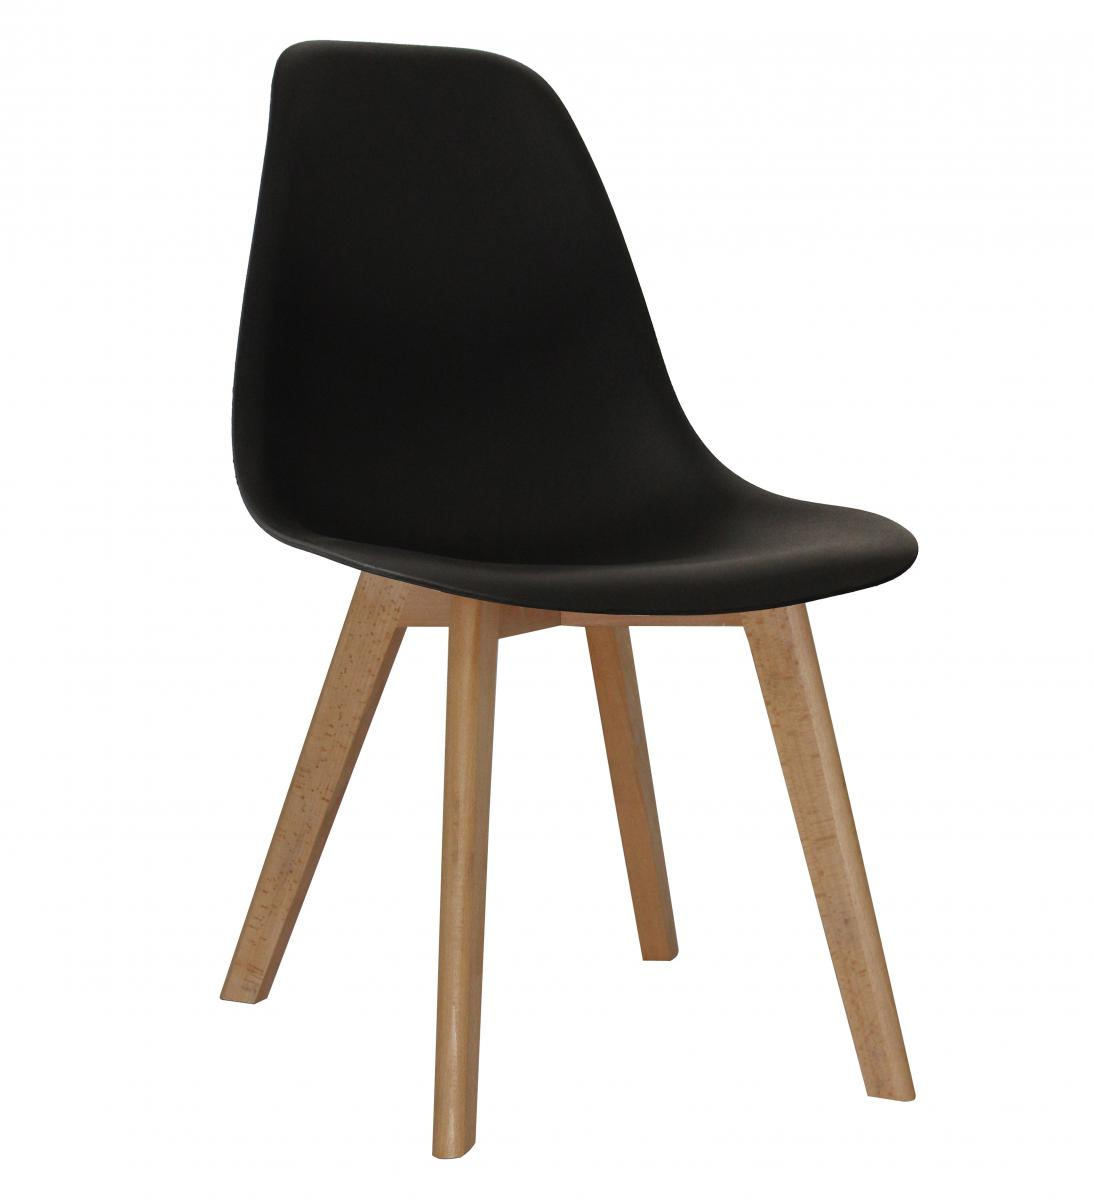 Belgium Plastic (PP) Chairs with Solid Beech Legs Black